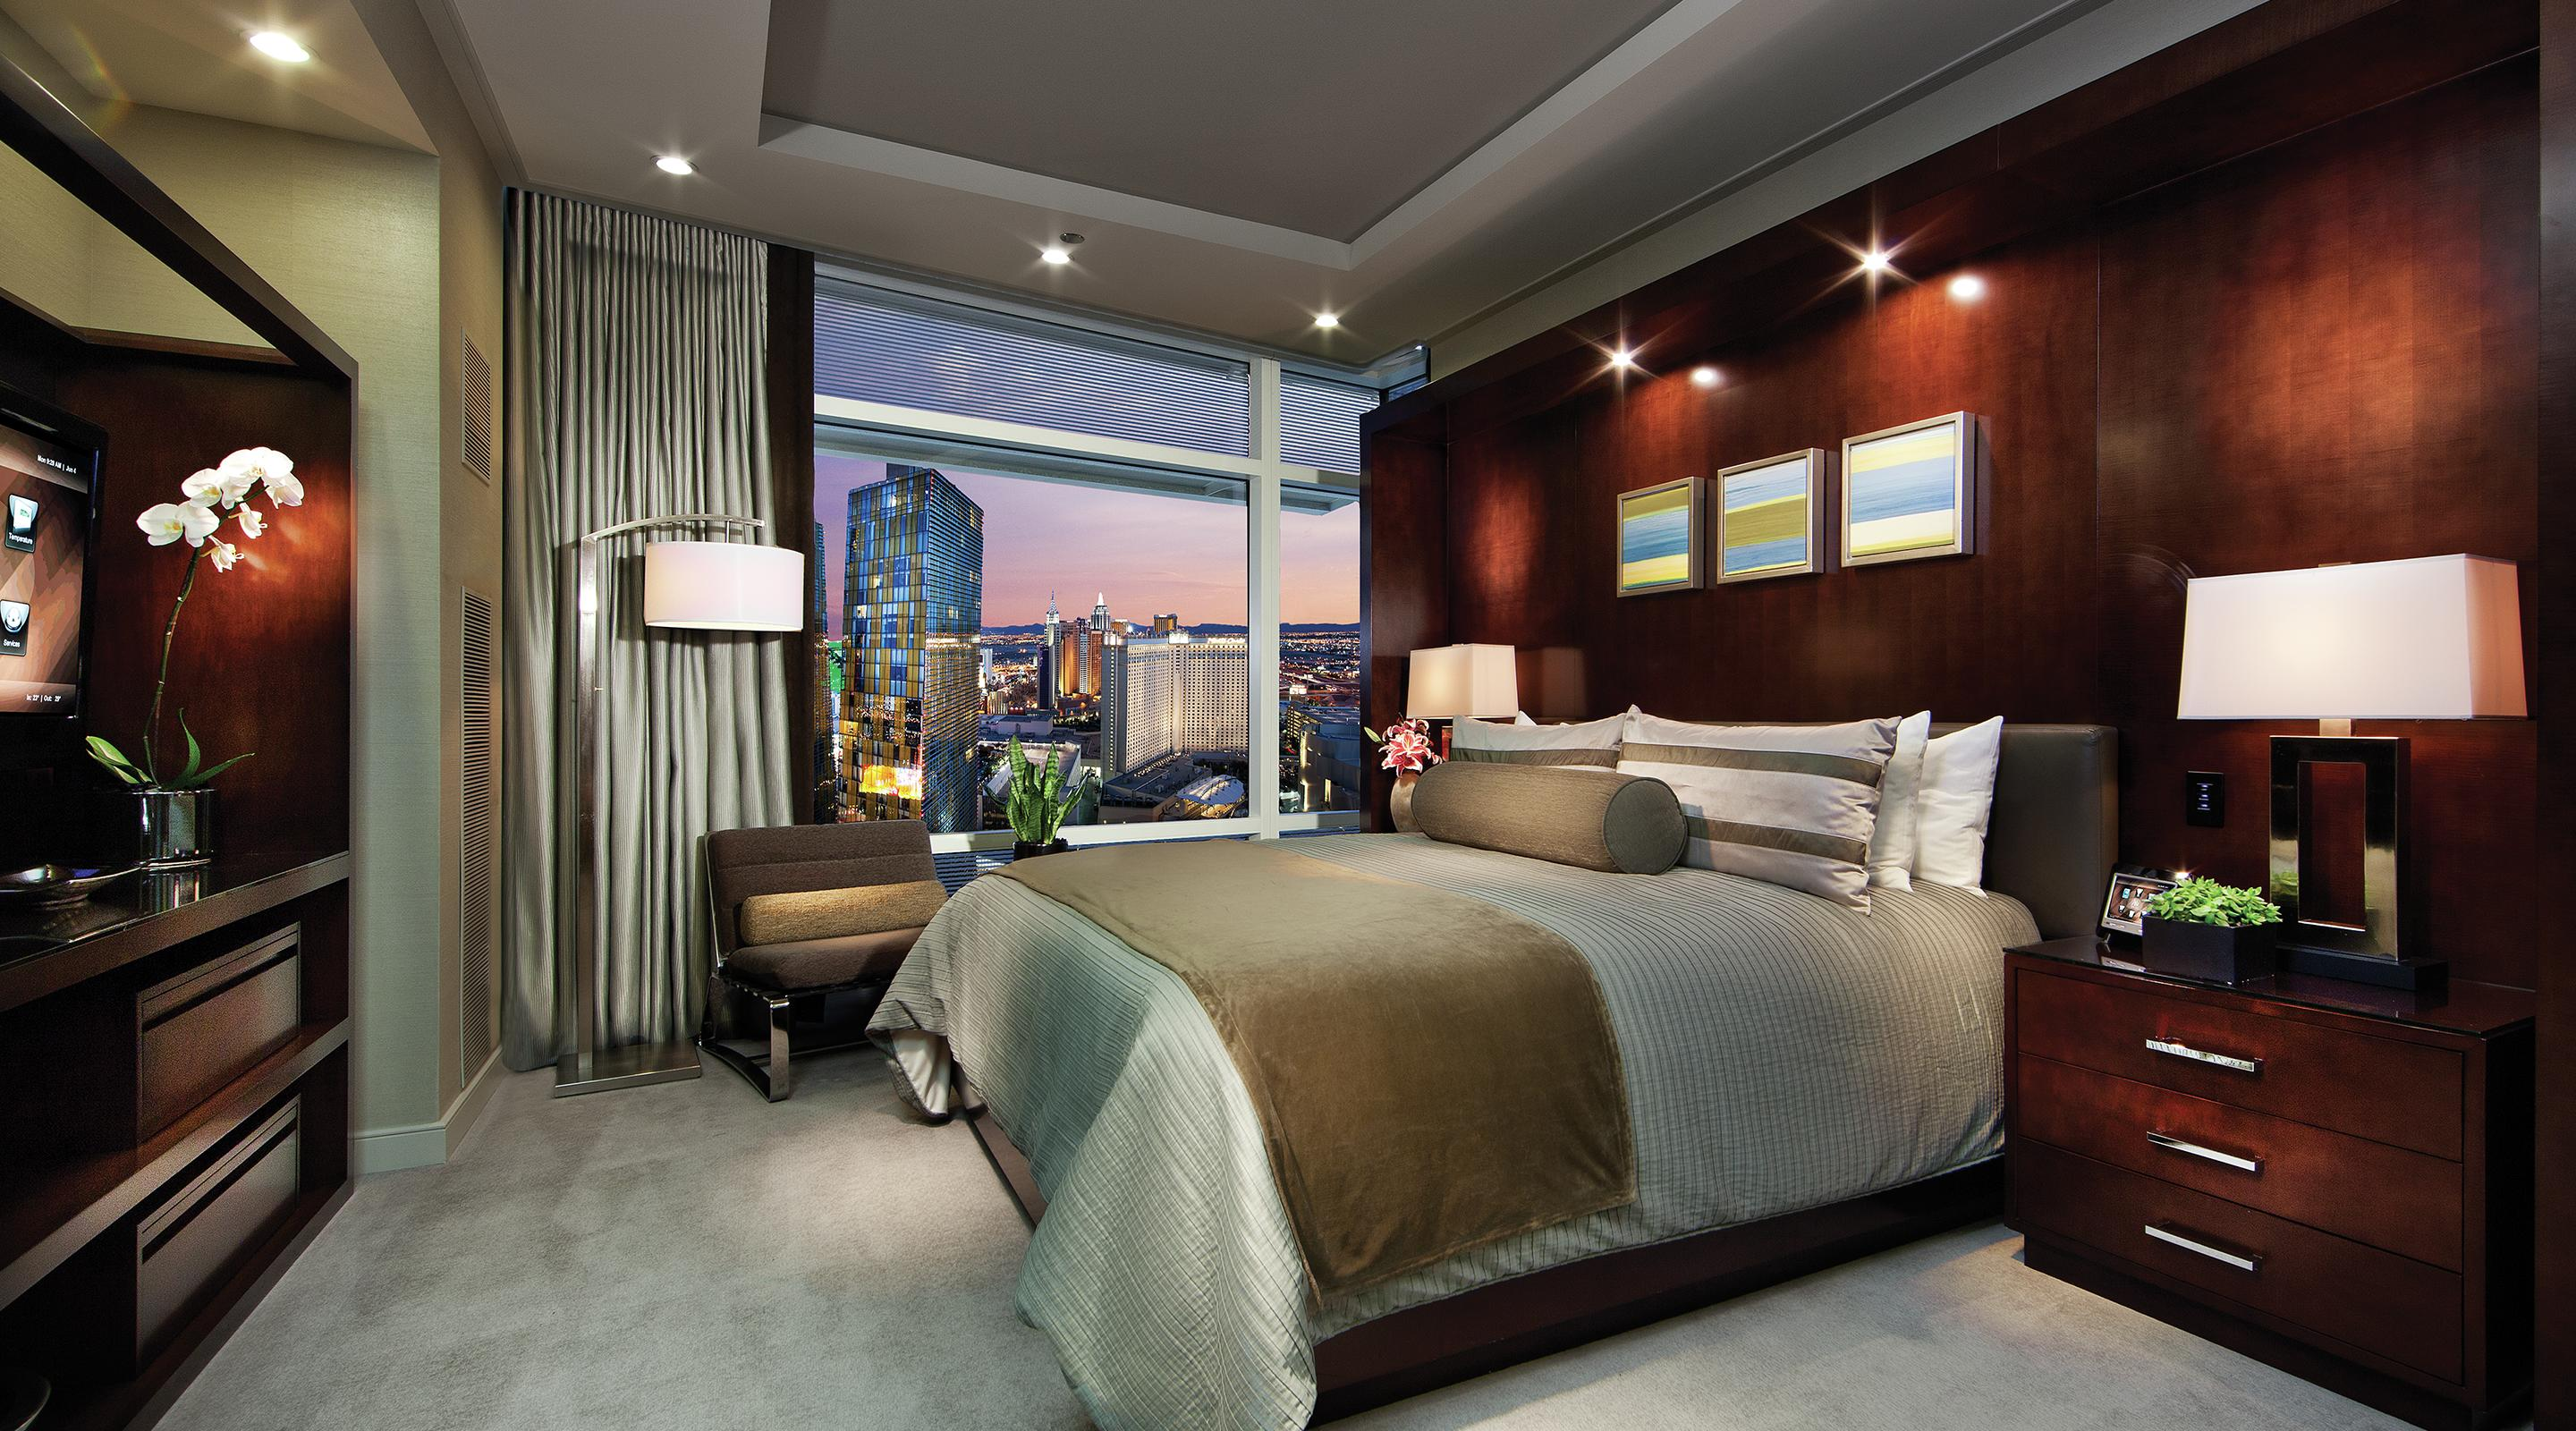 Hotels With Two Bedroom Suites In Las Vegas